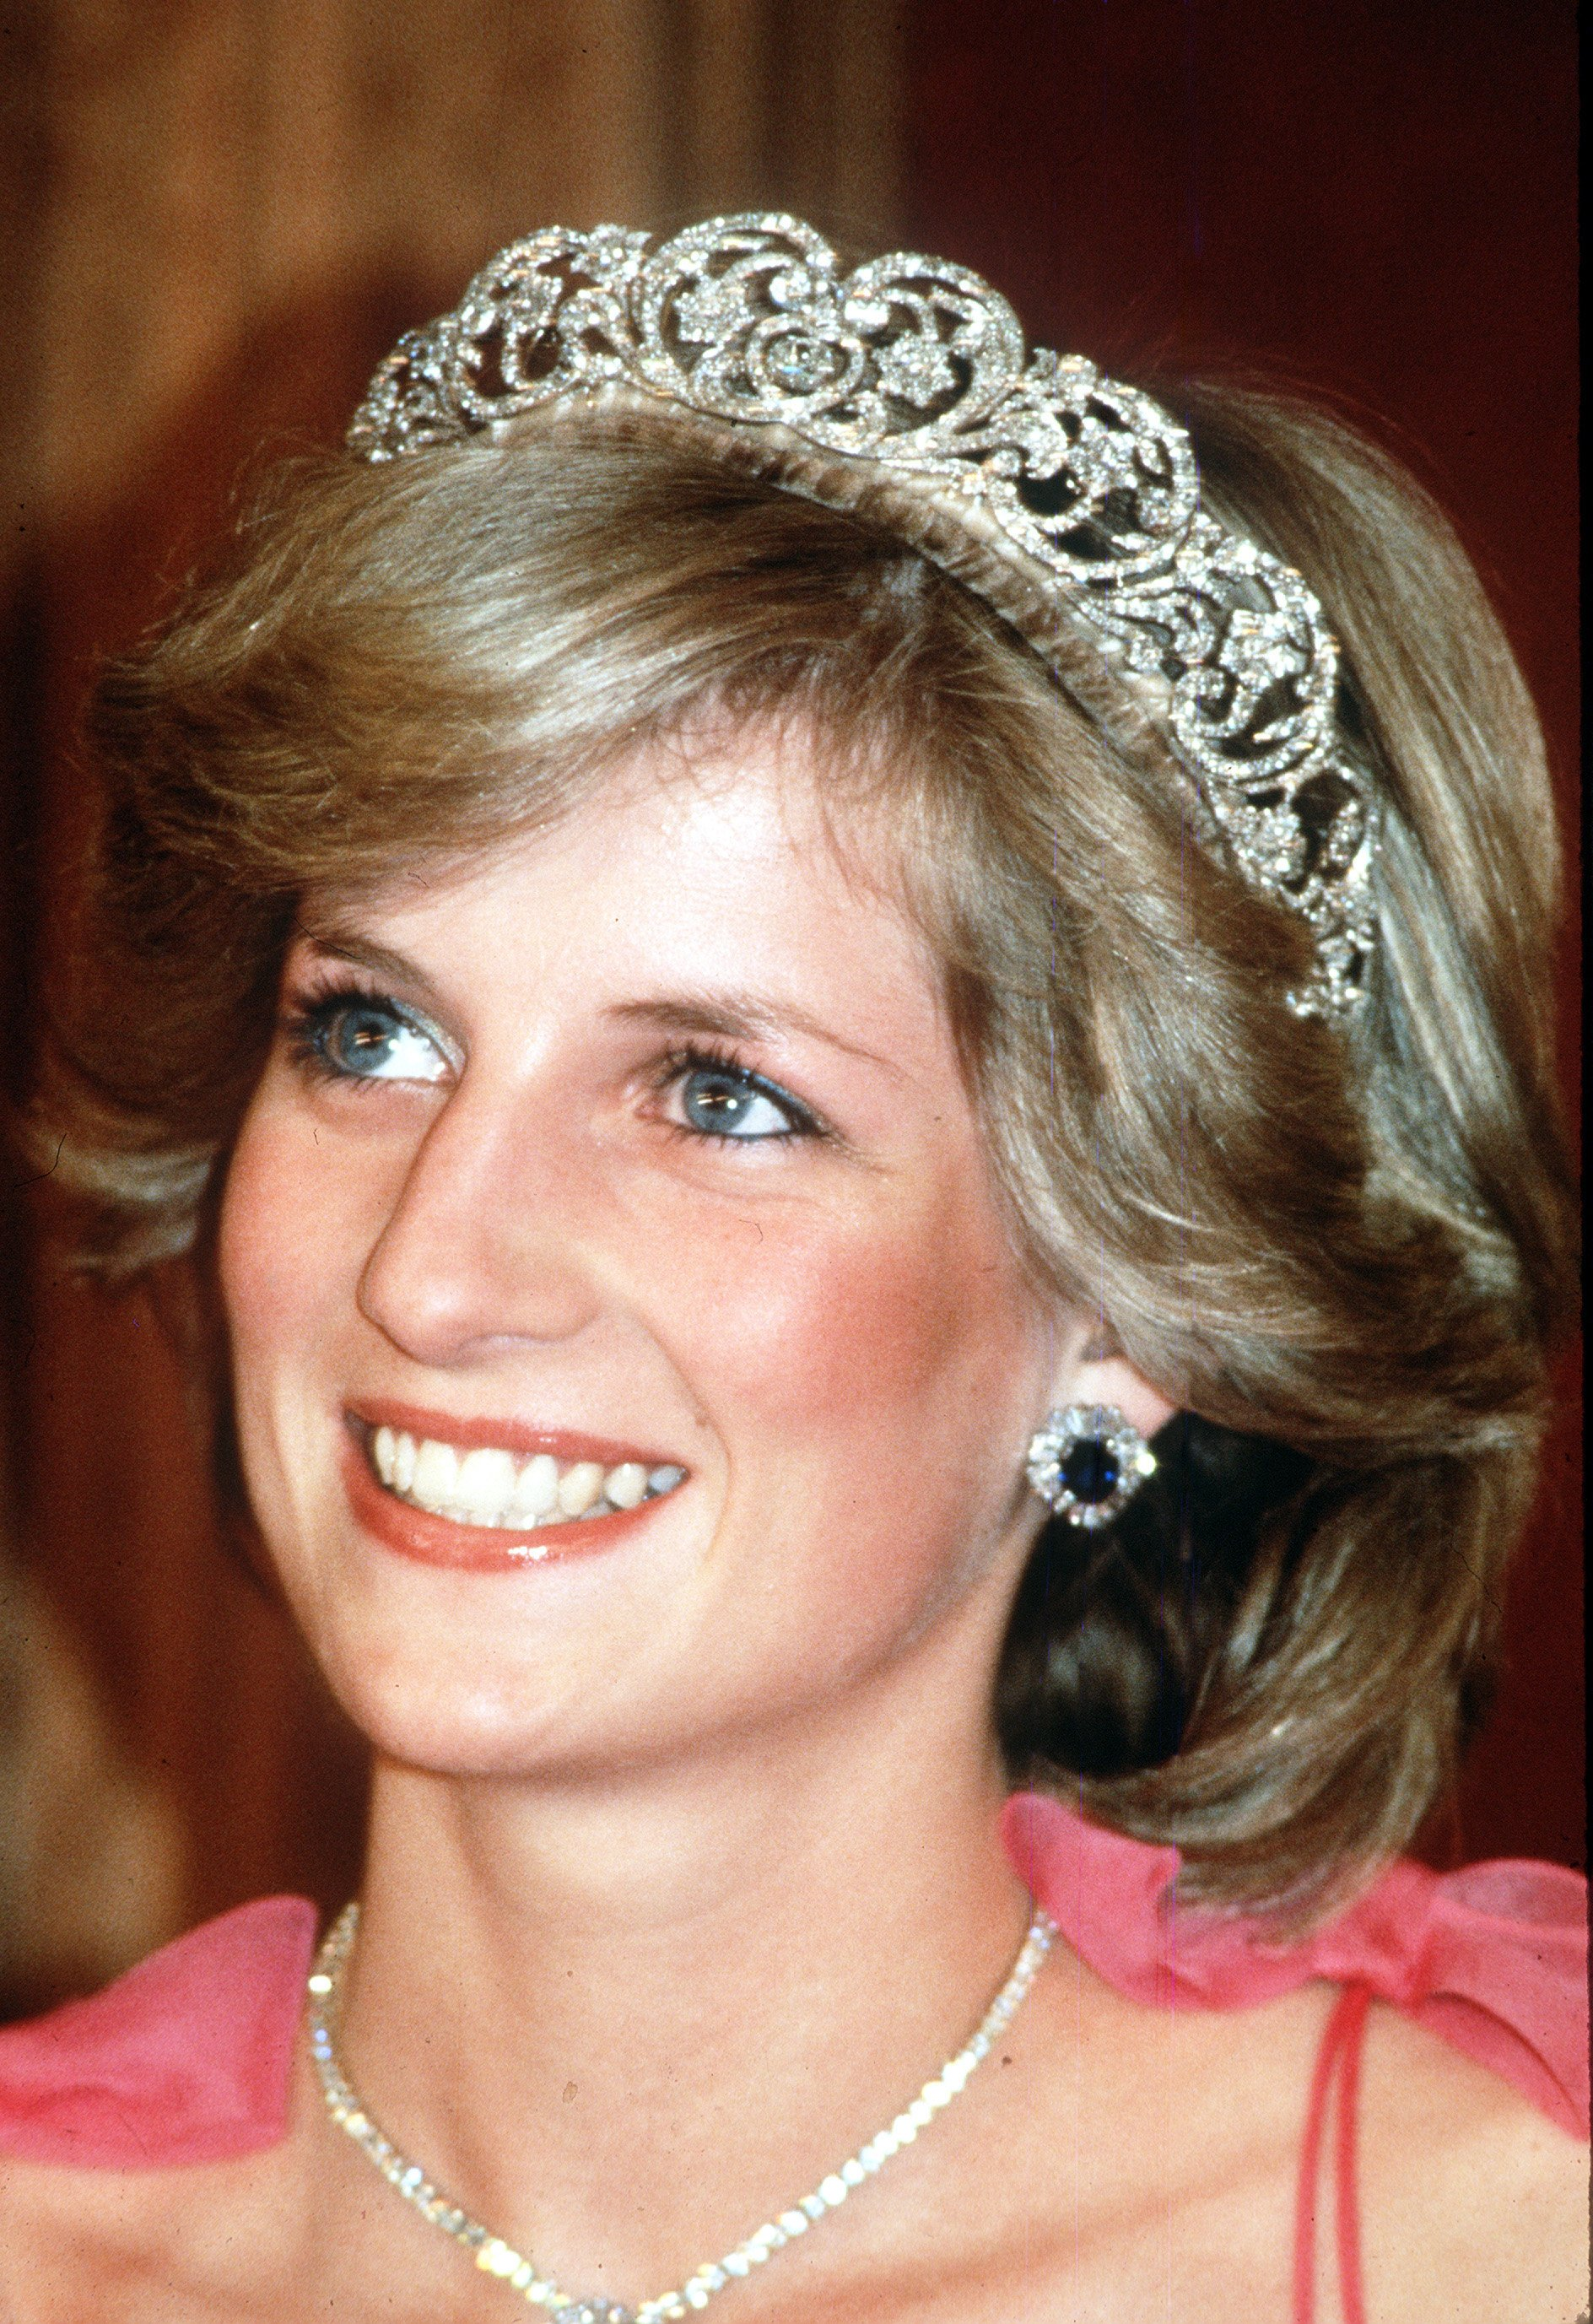 Princess Diana, Princess of Wales, smiles while wearing the Spencer Family Tiara at a State Reception in Brisbane, Australia in April, 1983